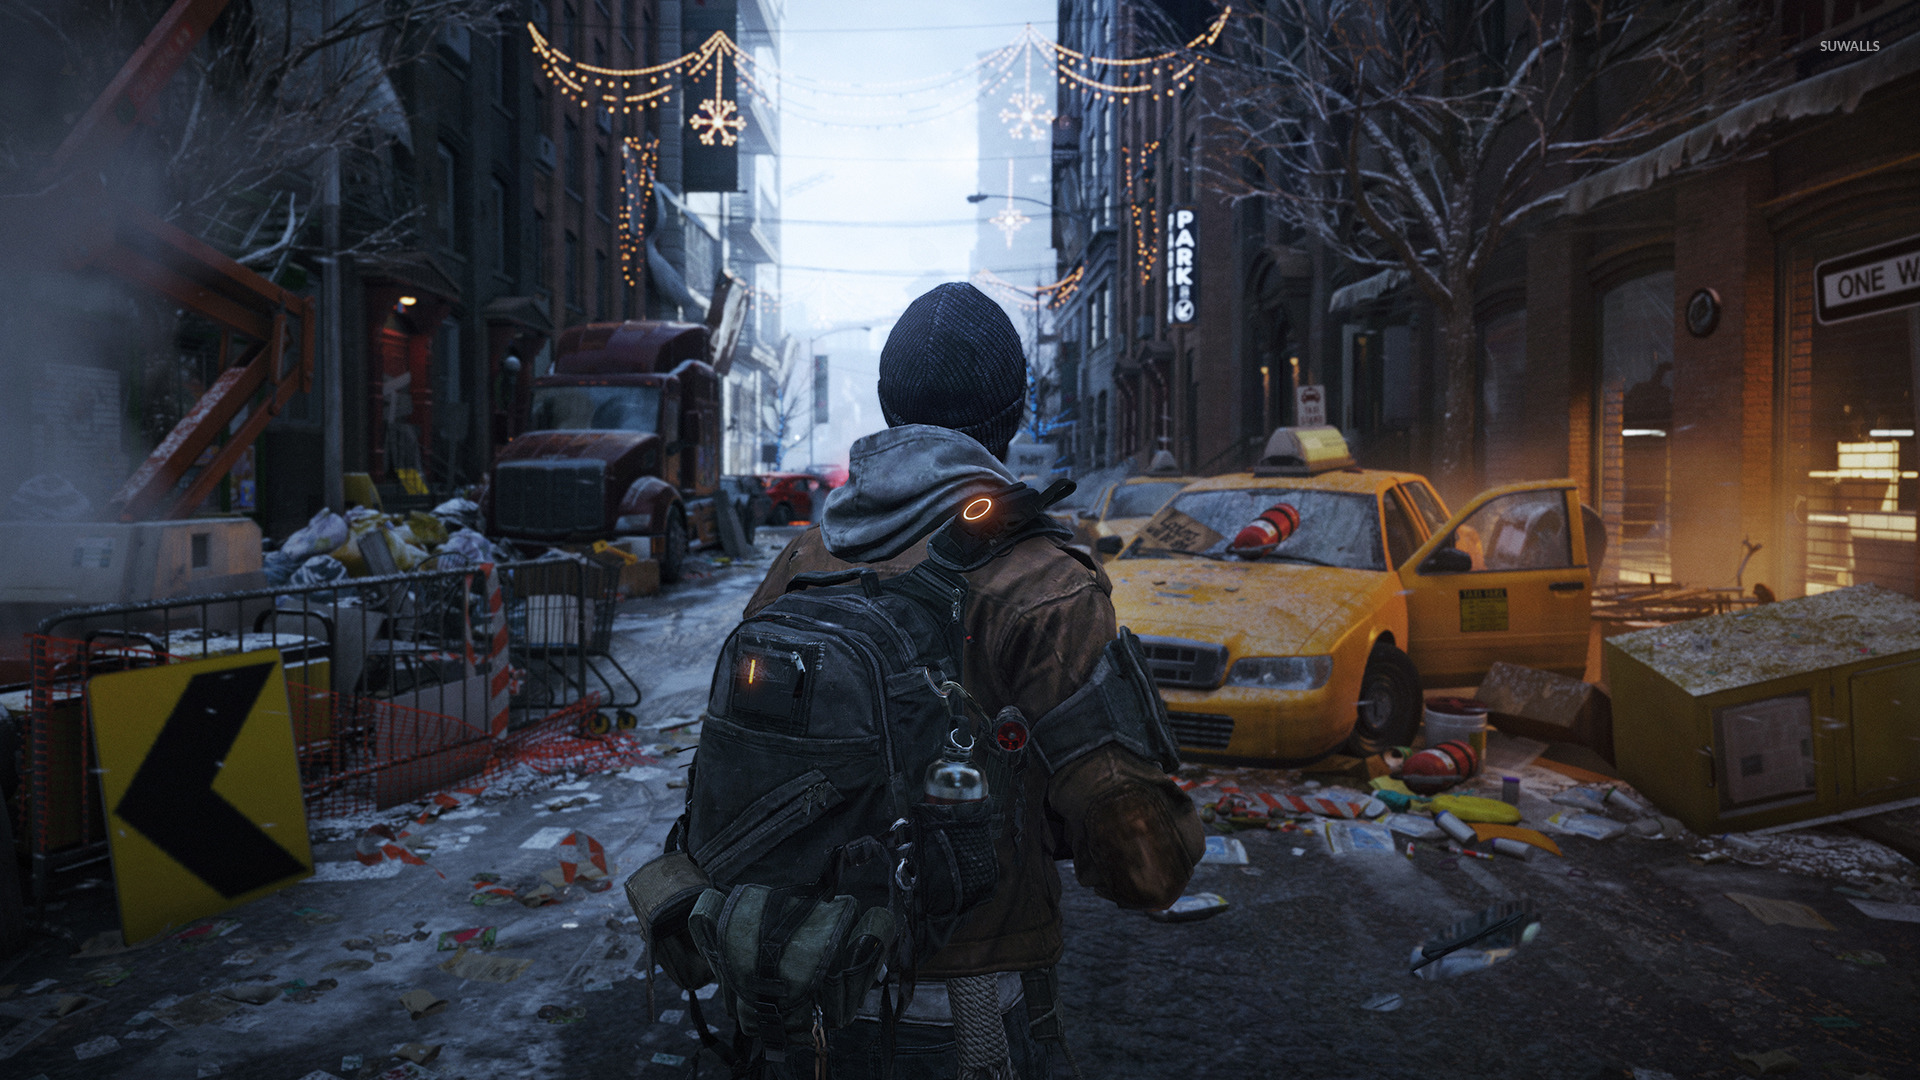 Tom Clancy S The Division 2 Wallpaper Game Wallpapers 21124